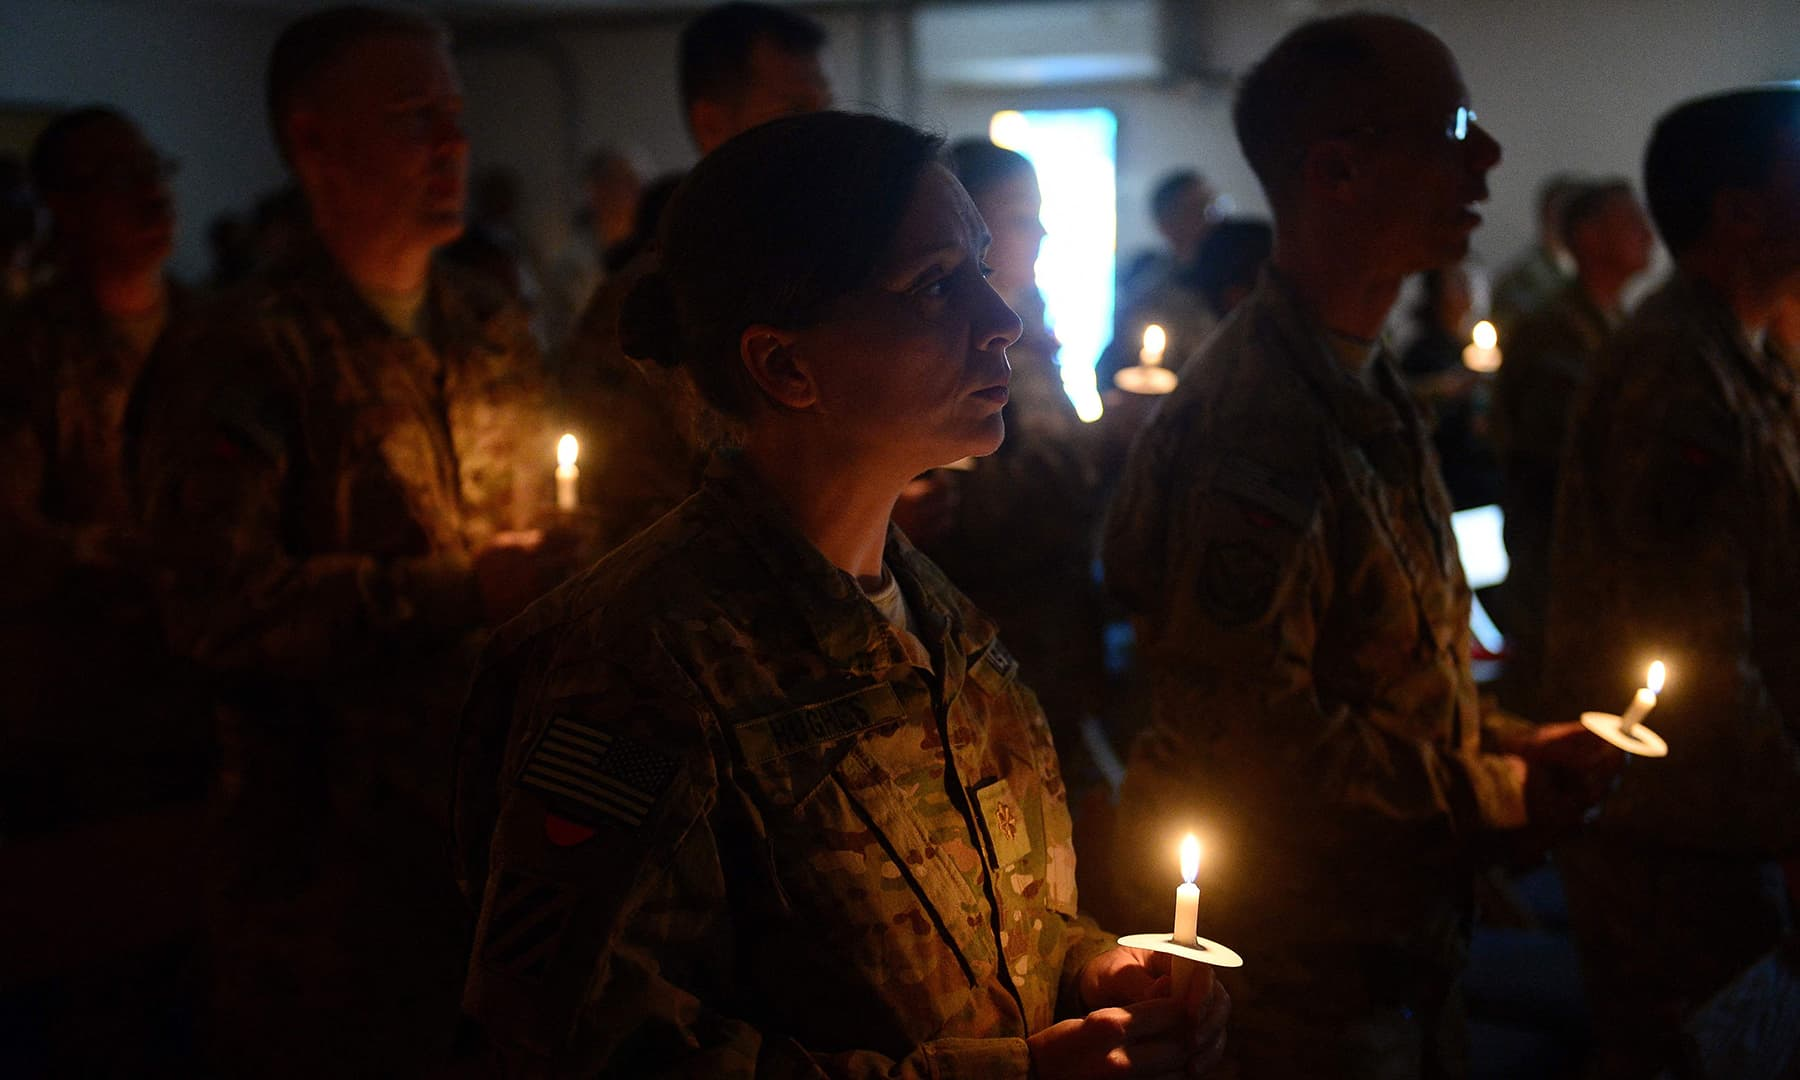 In this file photo taken on December 24, 2013, US soldiers hold candles as they attend a religious ceremony on Christmas Eve at a US military base in Kabul. — AFP